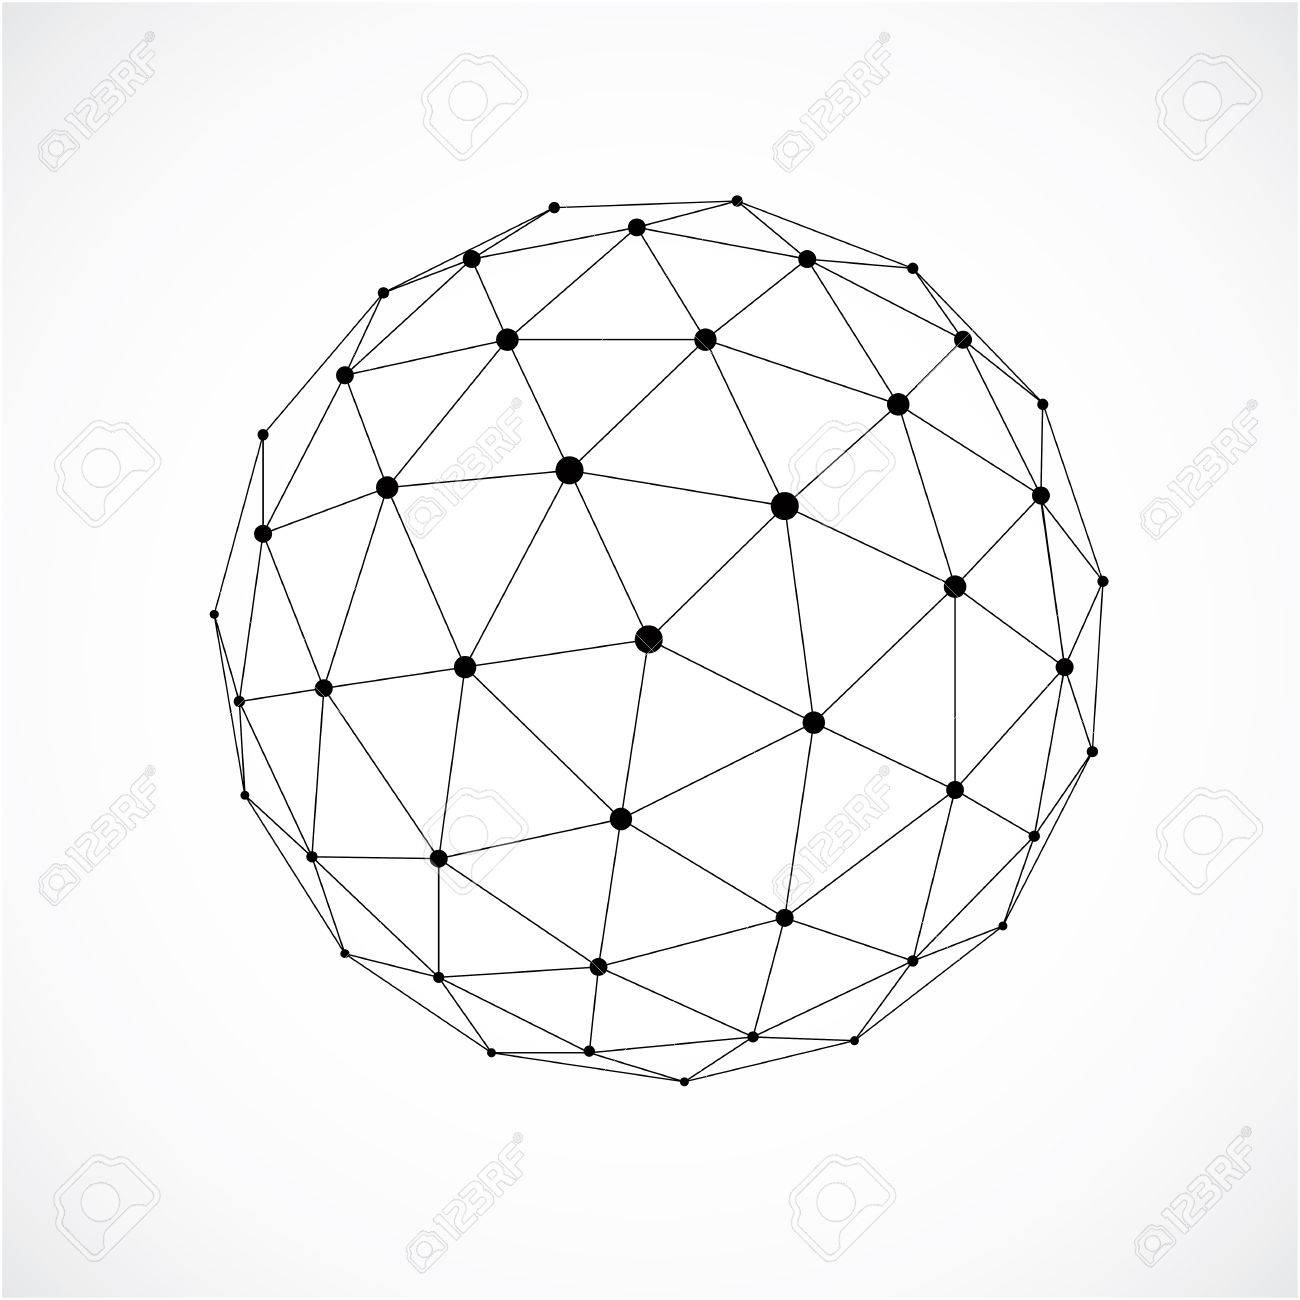 3d Sphere Drawing At Getdrawings Com Free For Personal Use